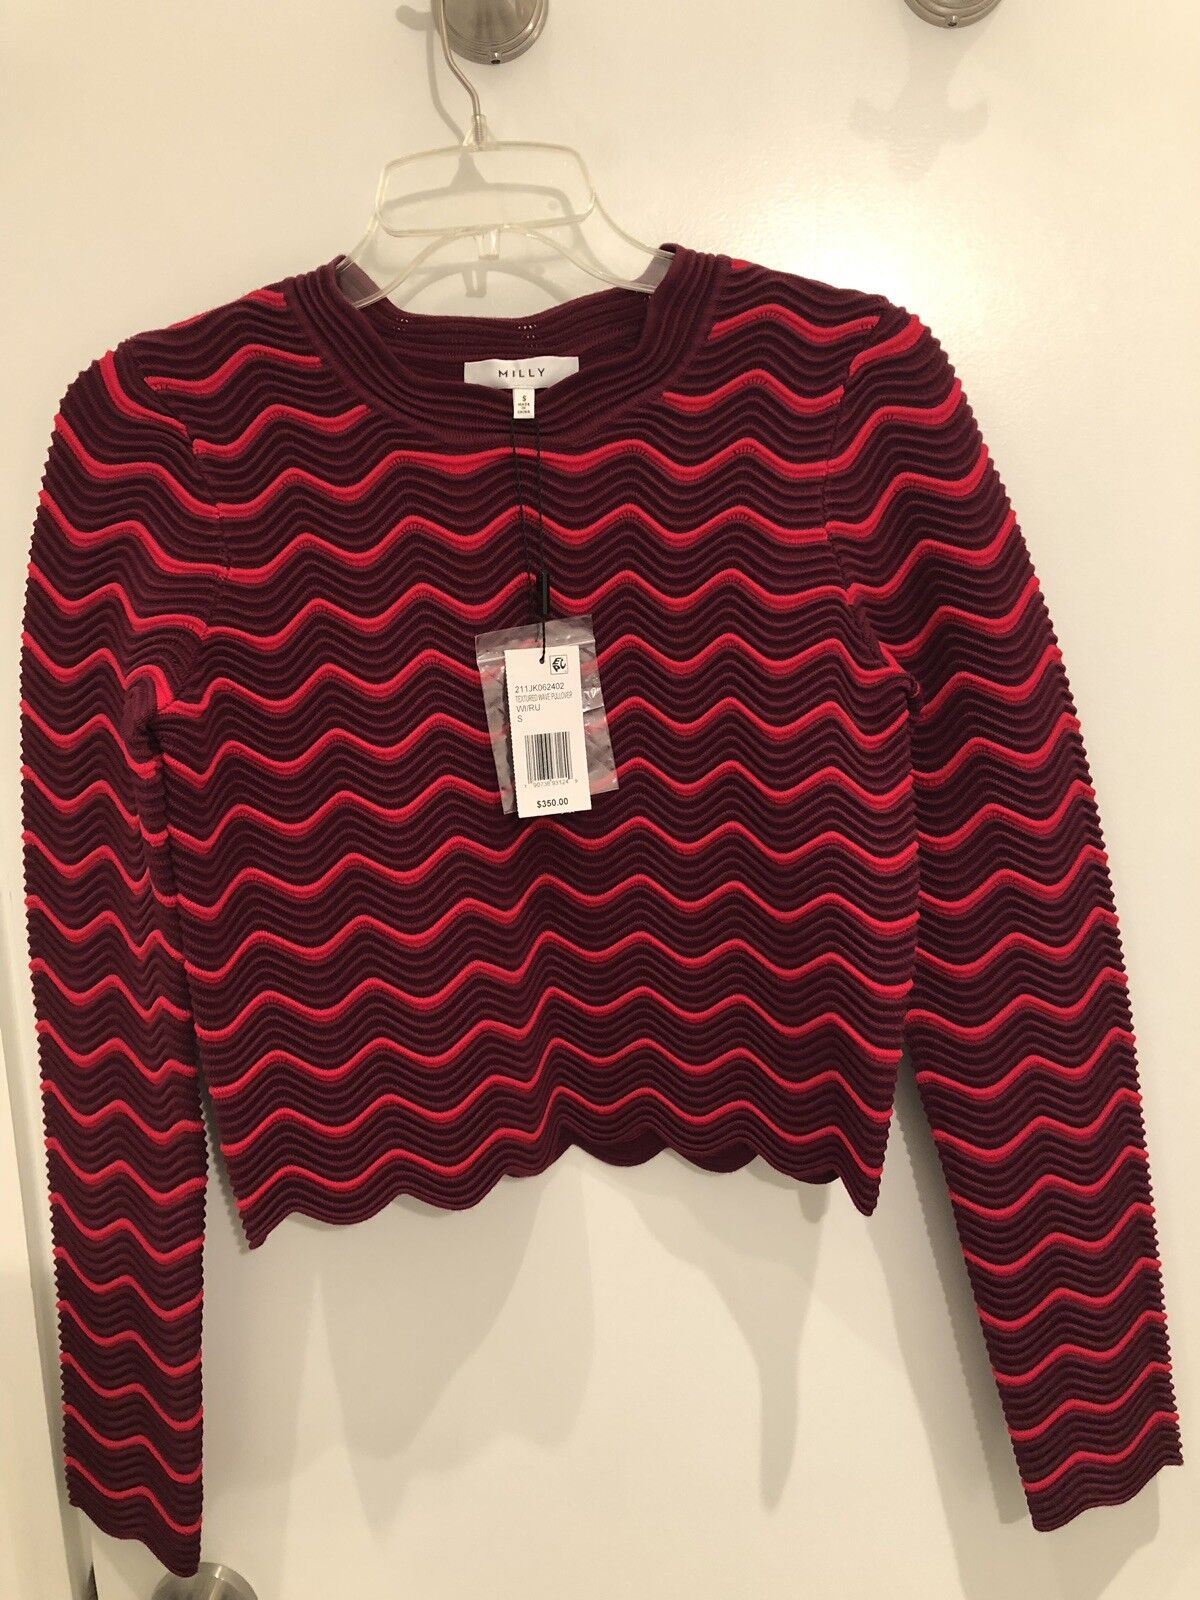 Milly Red And Purple Wave Crop Sweater Size S New With Tags